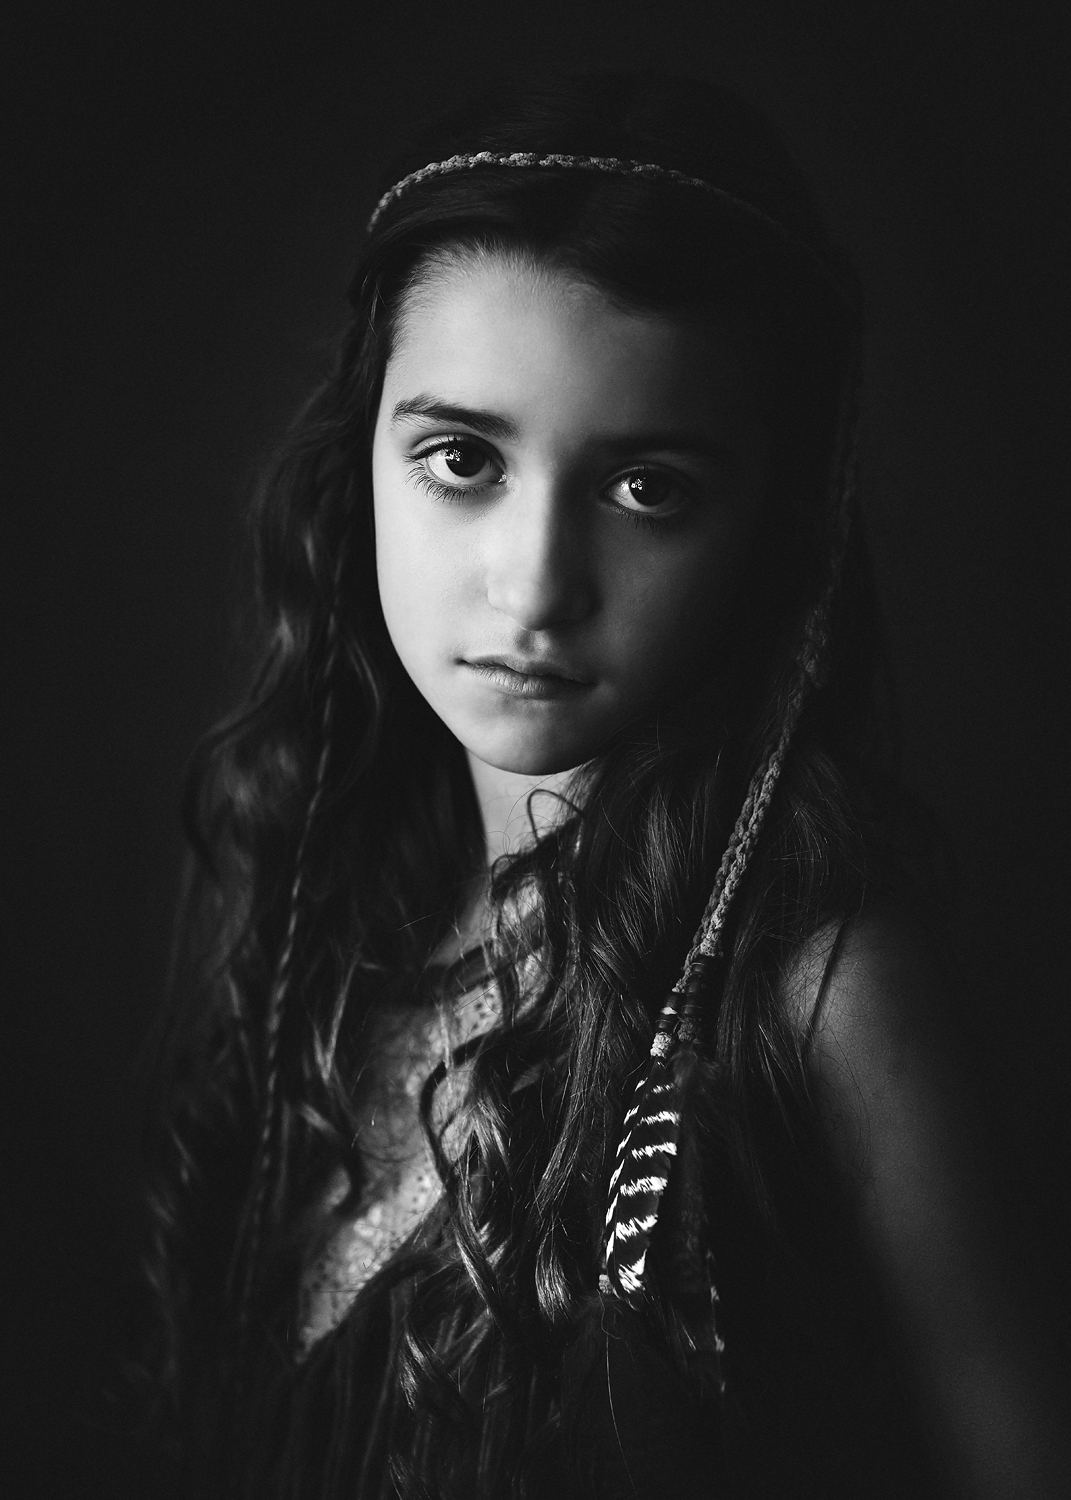 Think, that Black and white fine art photography right!